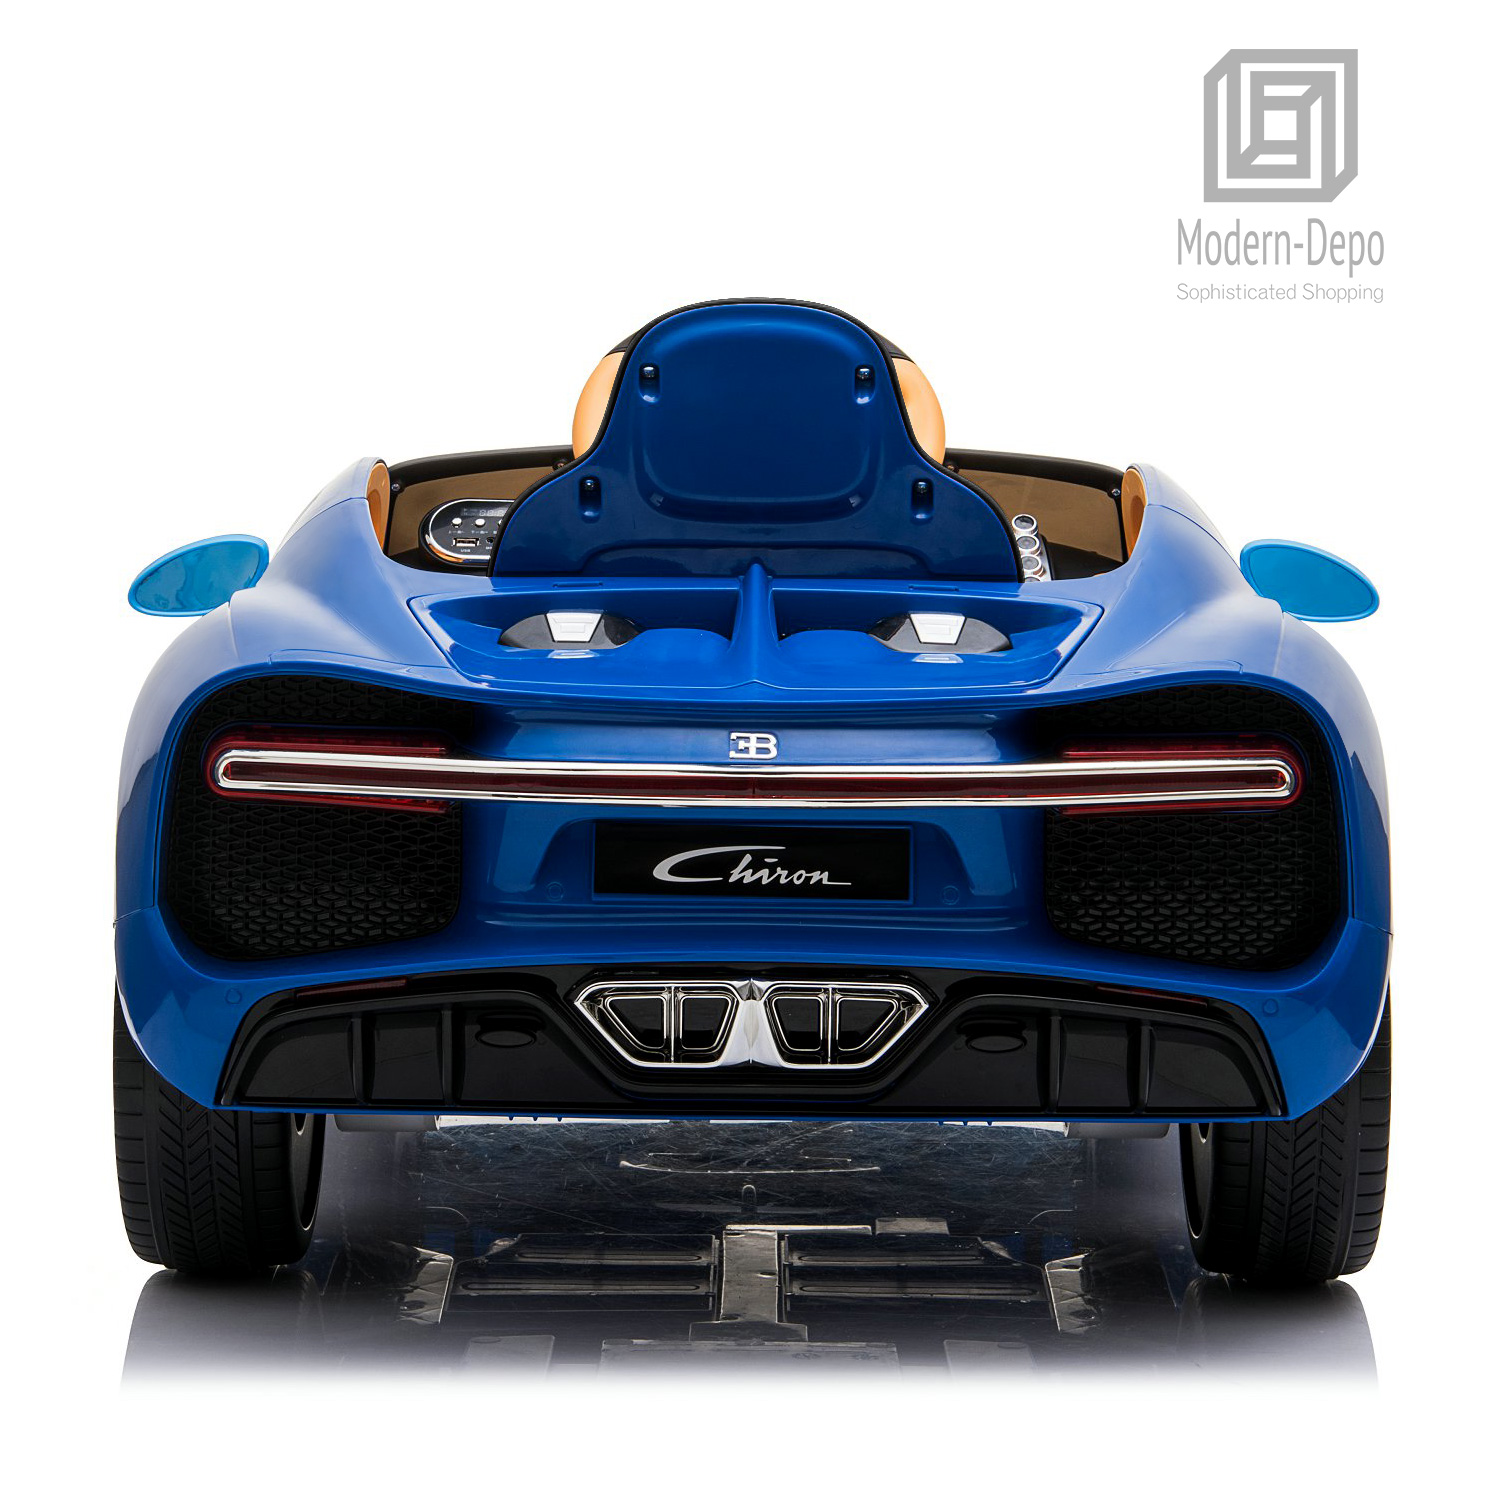 Bugatti-Chiron-12V-Kids-Ride-On-Car-with-Remote-Control-High-Speed-Motor miniature 19